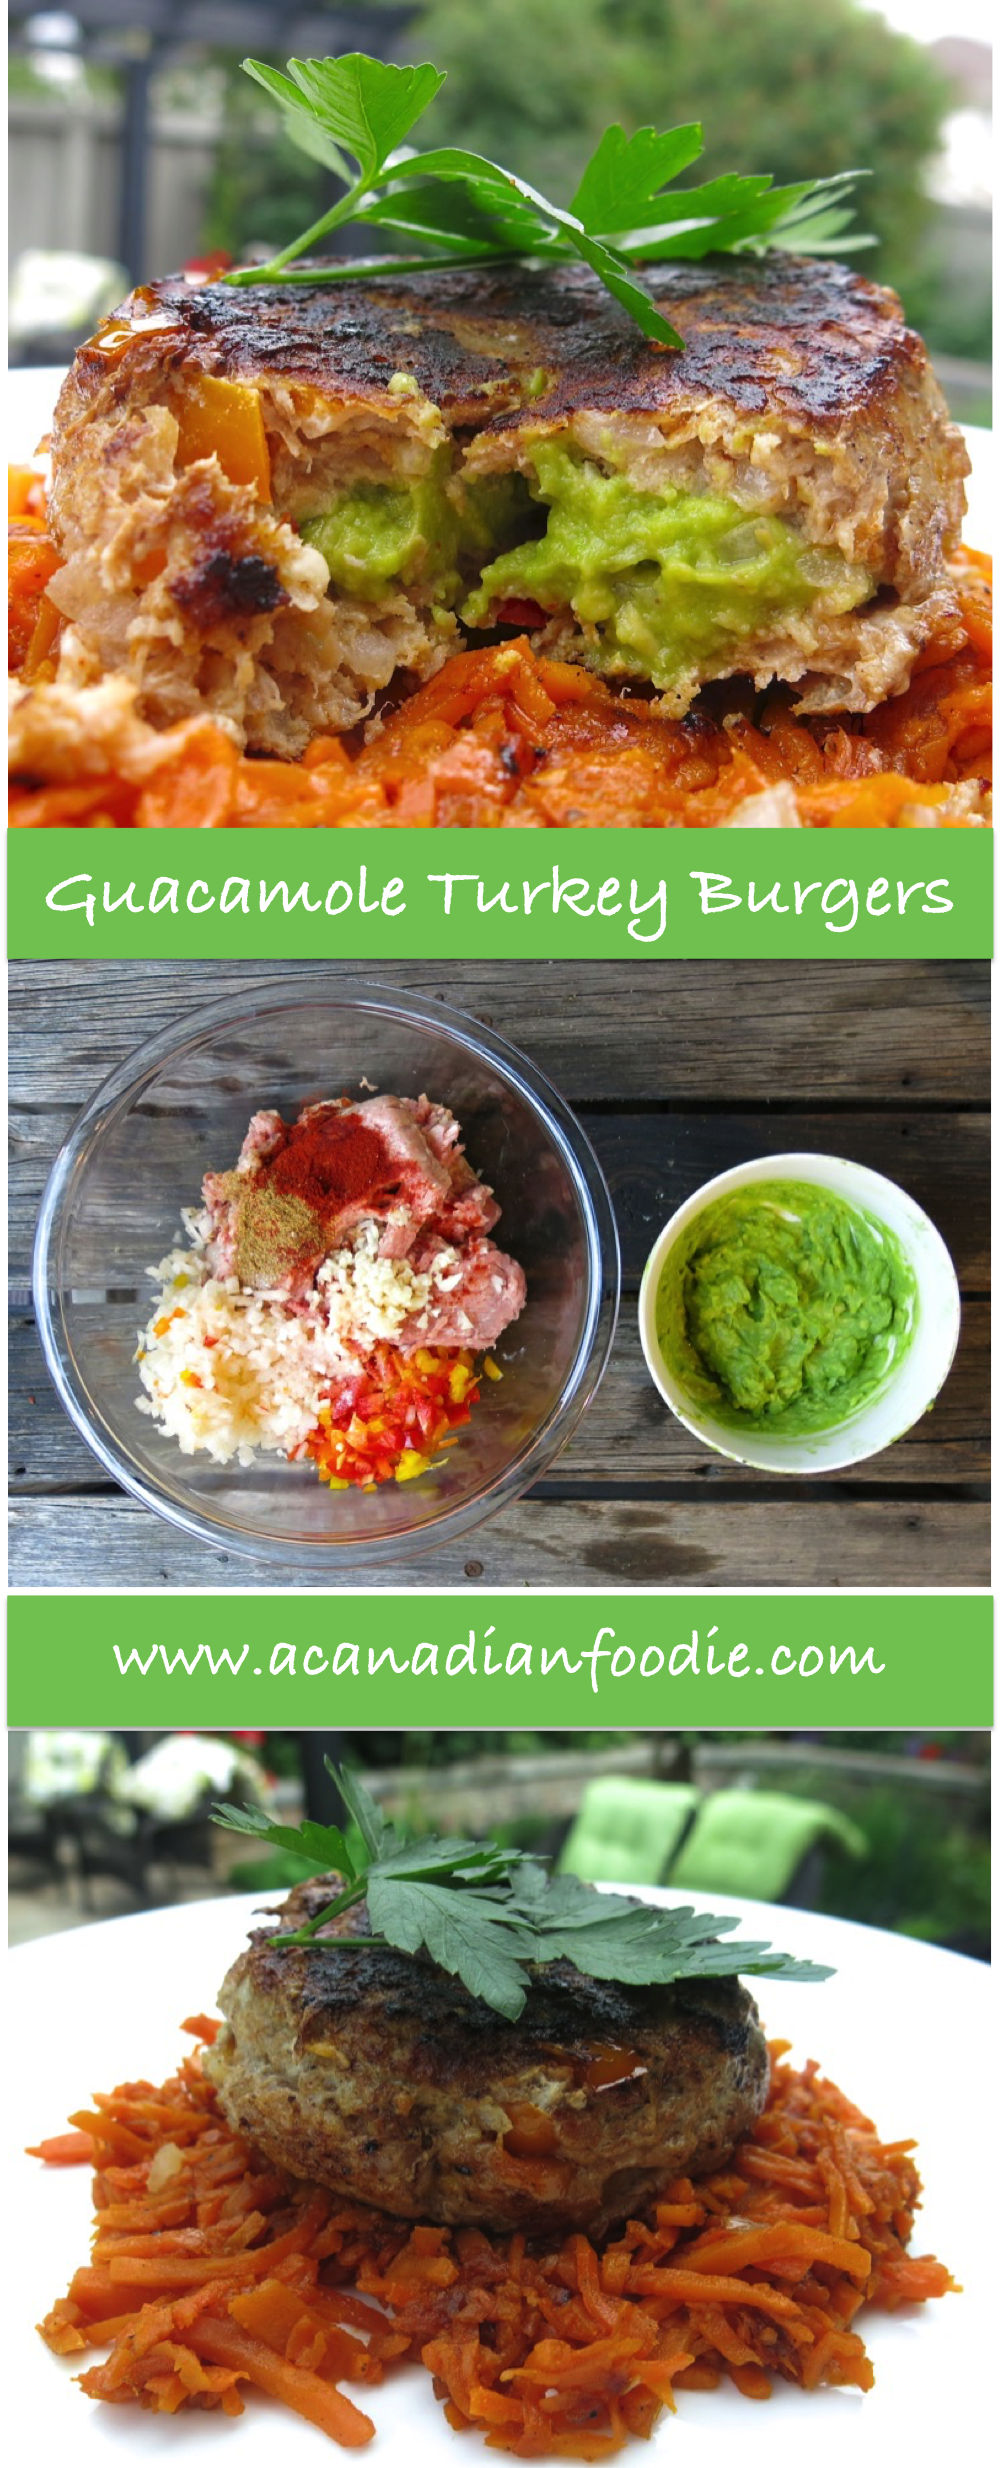 Healthy and Happy Spring Summer with Guacamole Turkey Burgers stuffed with guacamole filling. Step by step images. A spectacular and delish Show Stopper! www.acanadianfoodie.com